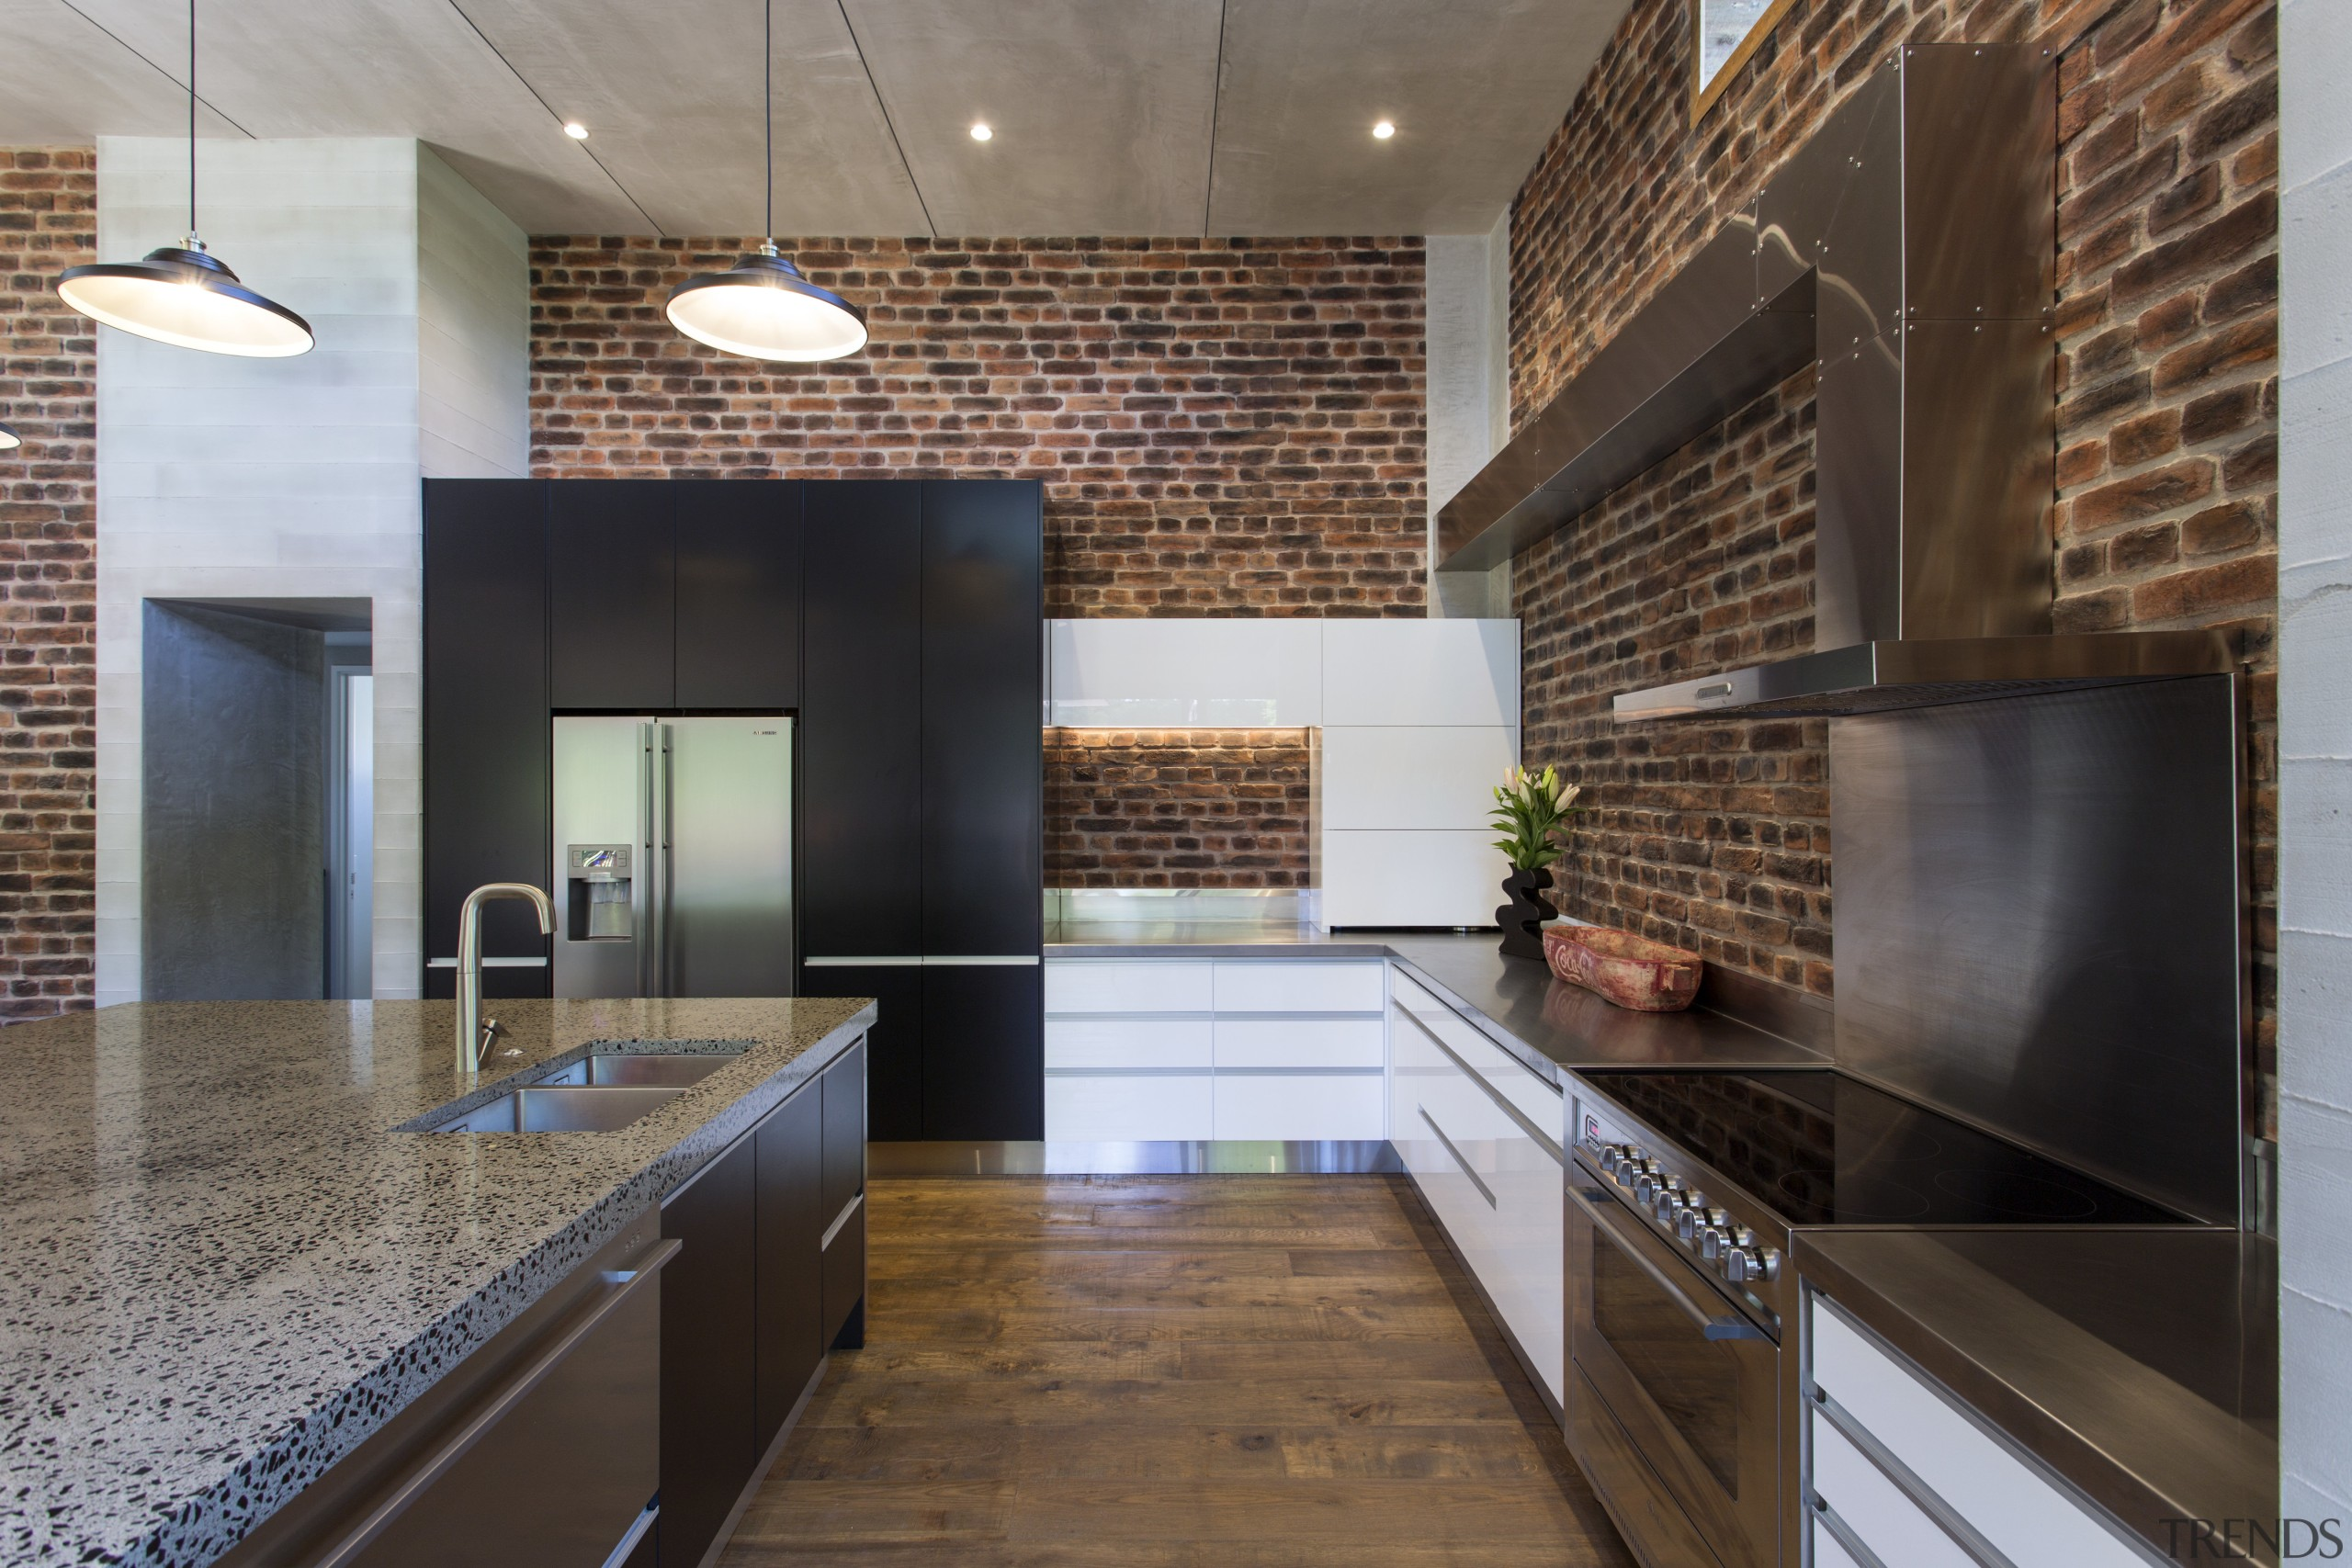 An L shape repeats throughout the design of architecture, cabinetry, countertop, flooring, hardwood, interior design, kitchen, loft, real estate, wood flooring, gray, black